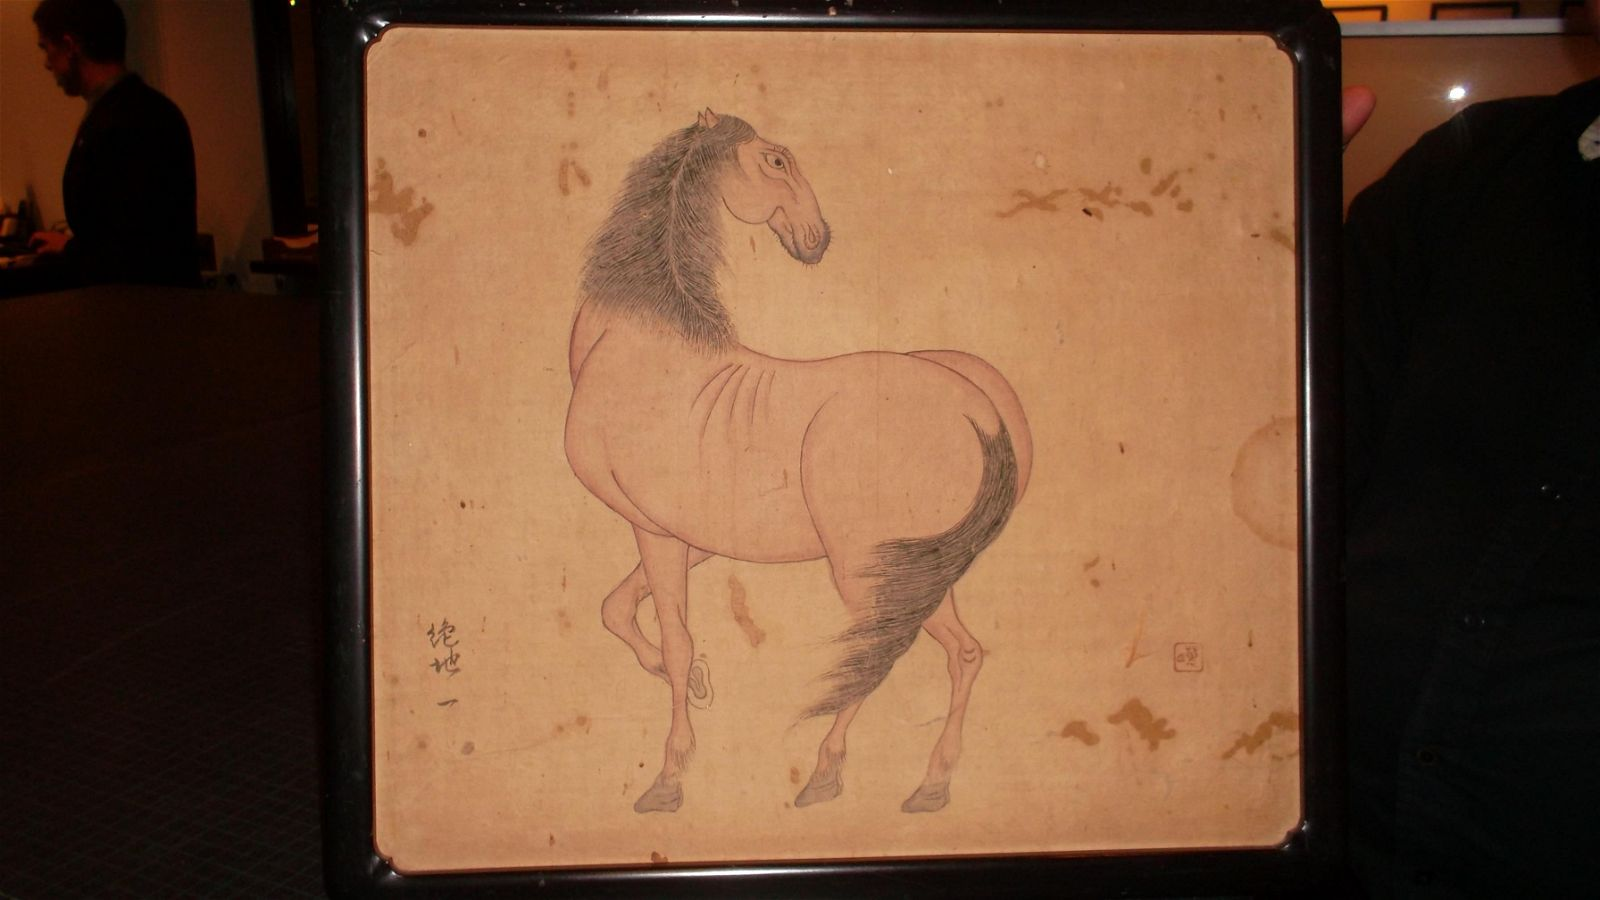 FROM CHRISTIE'S NEW YORK PAST AUCTION: EIGHT QING